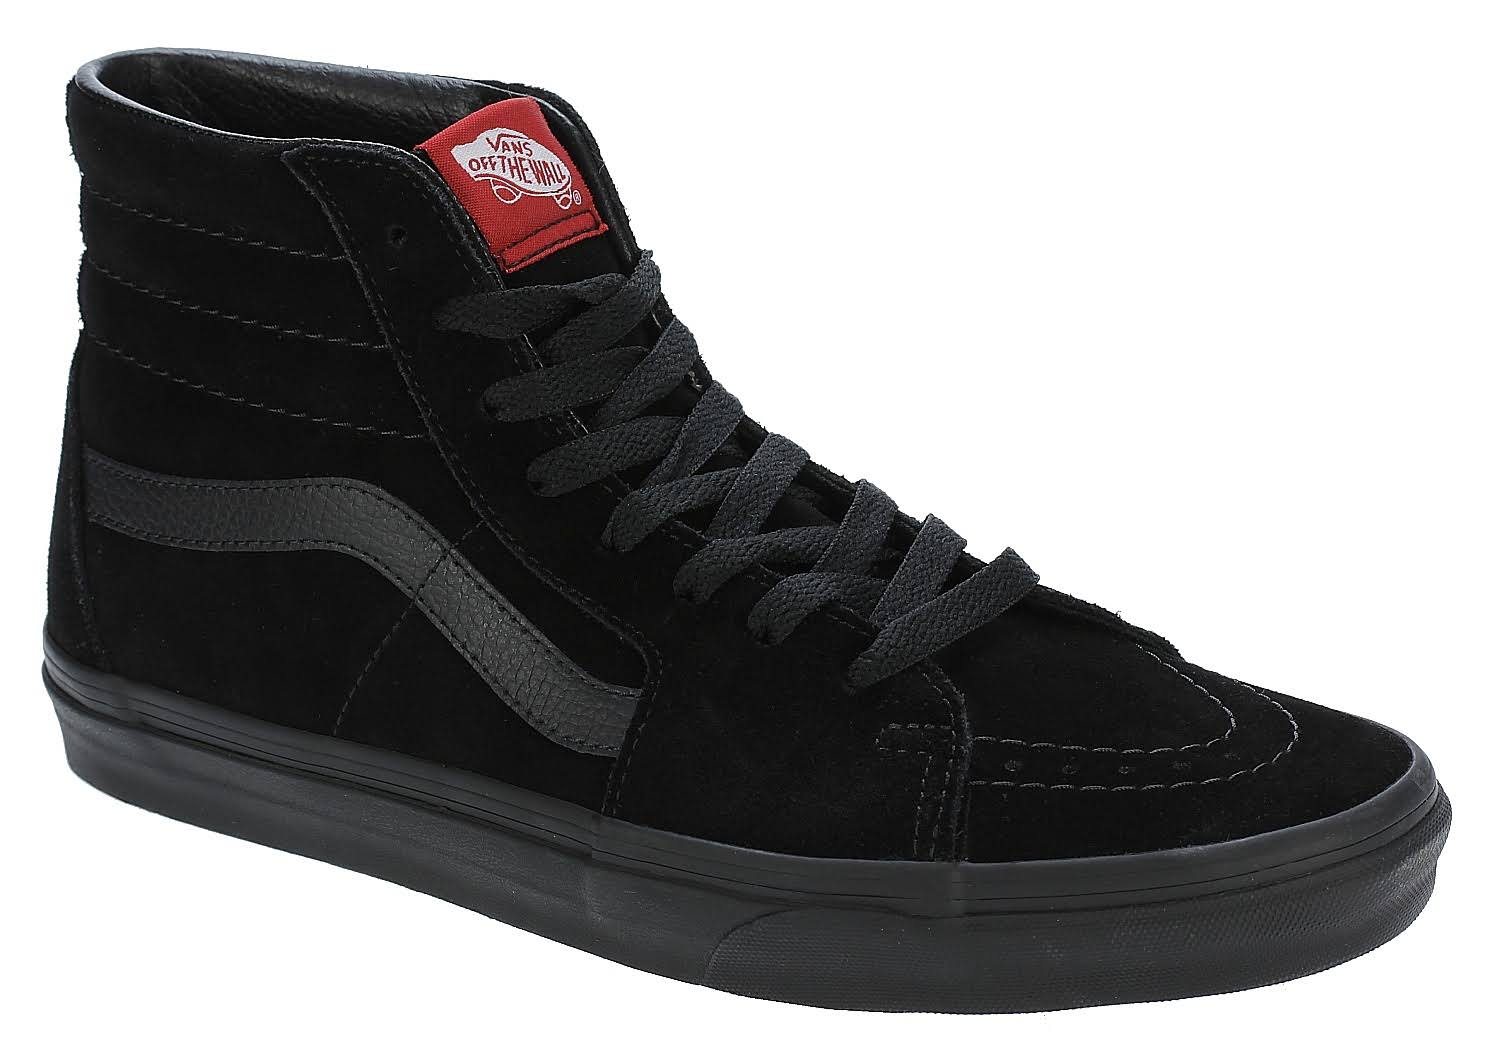 Spring black hi 2018 Shoe Sk8 Collection Vans Black Black wOaUvIx